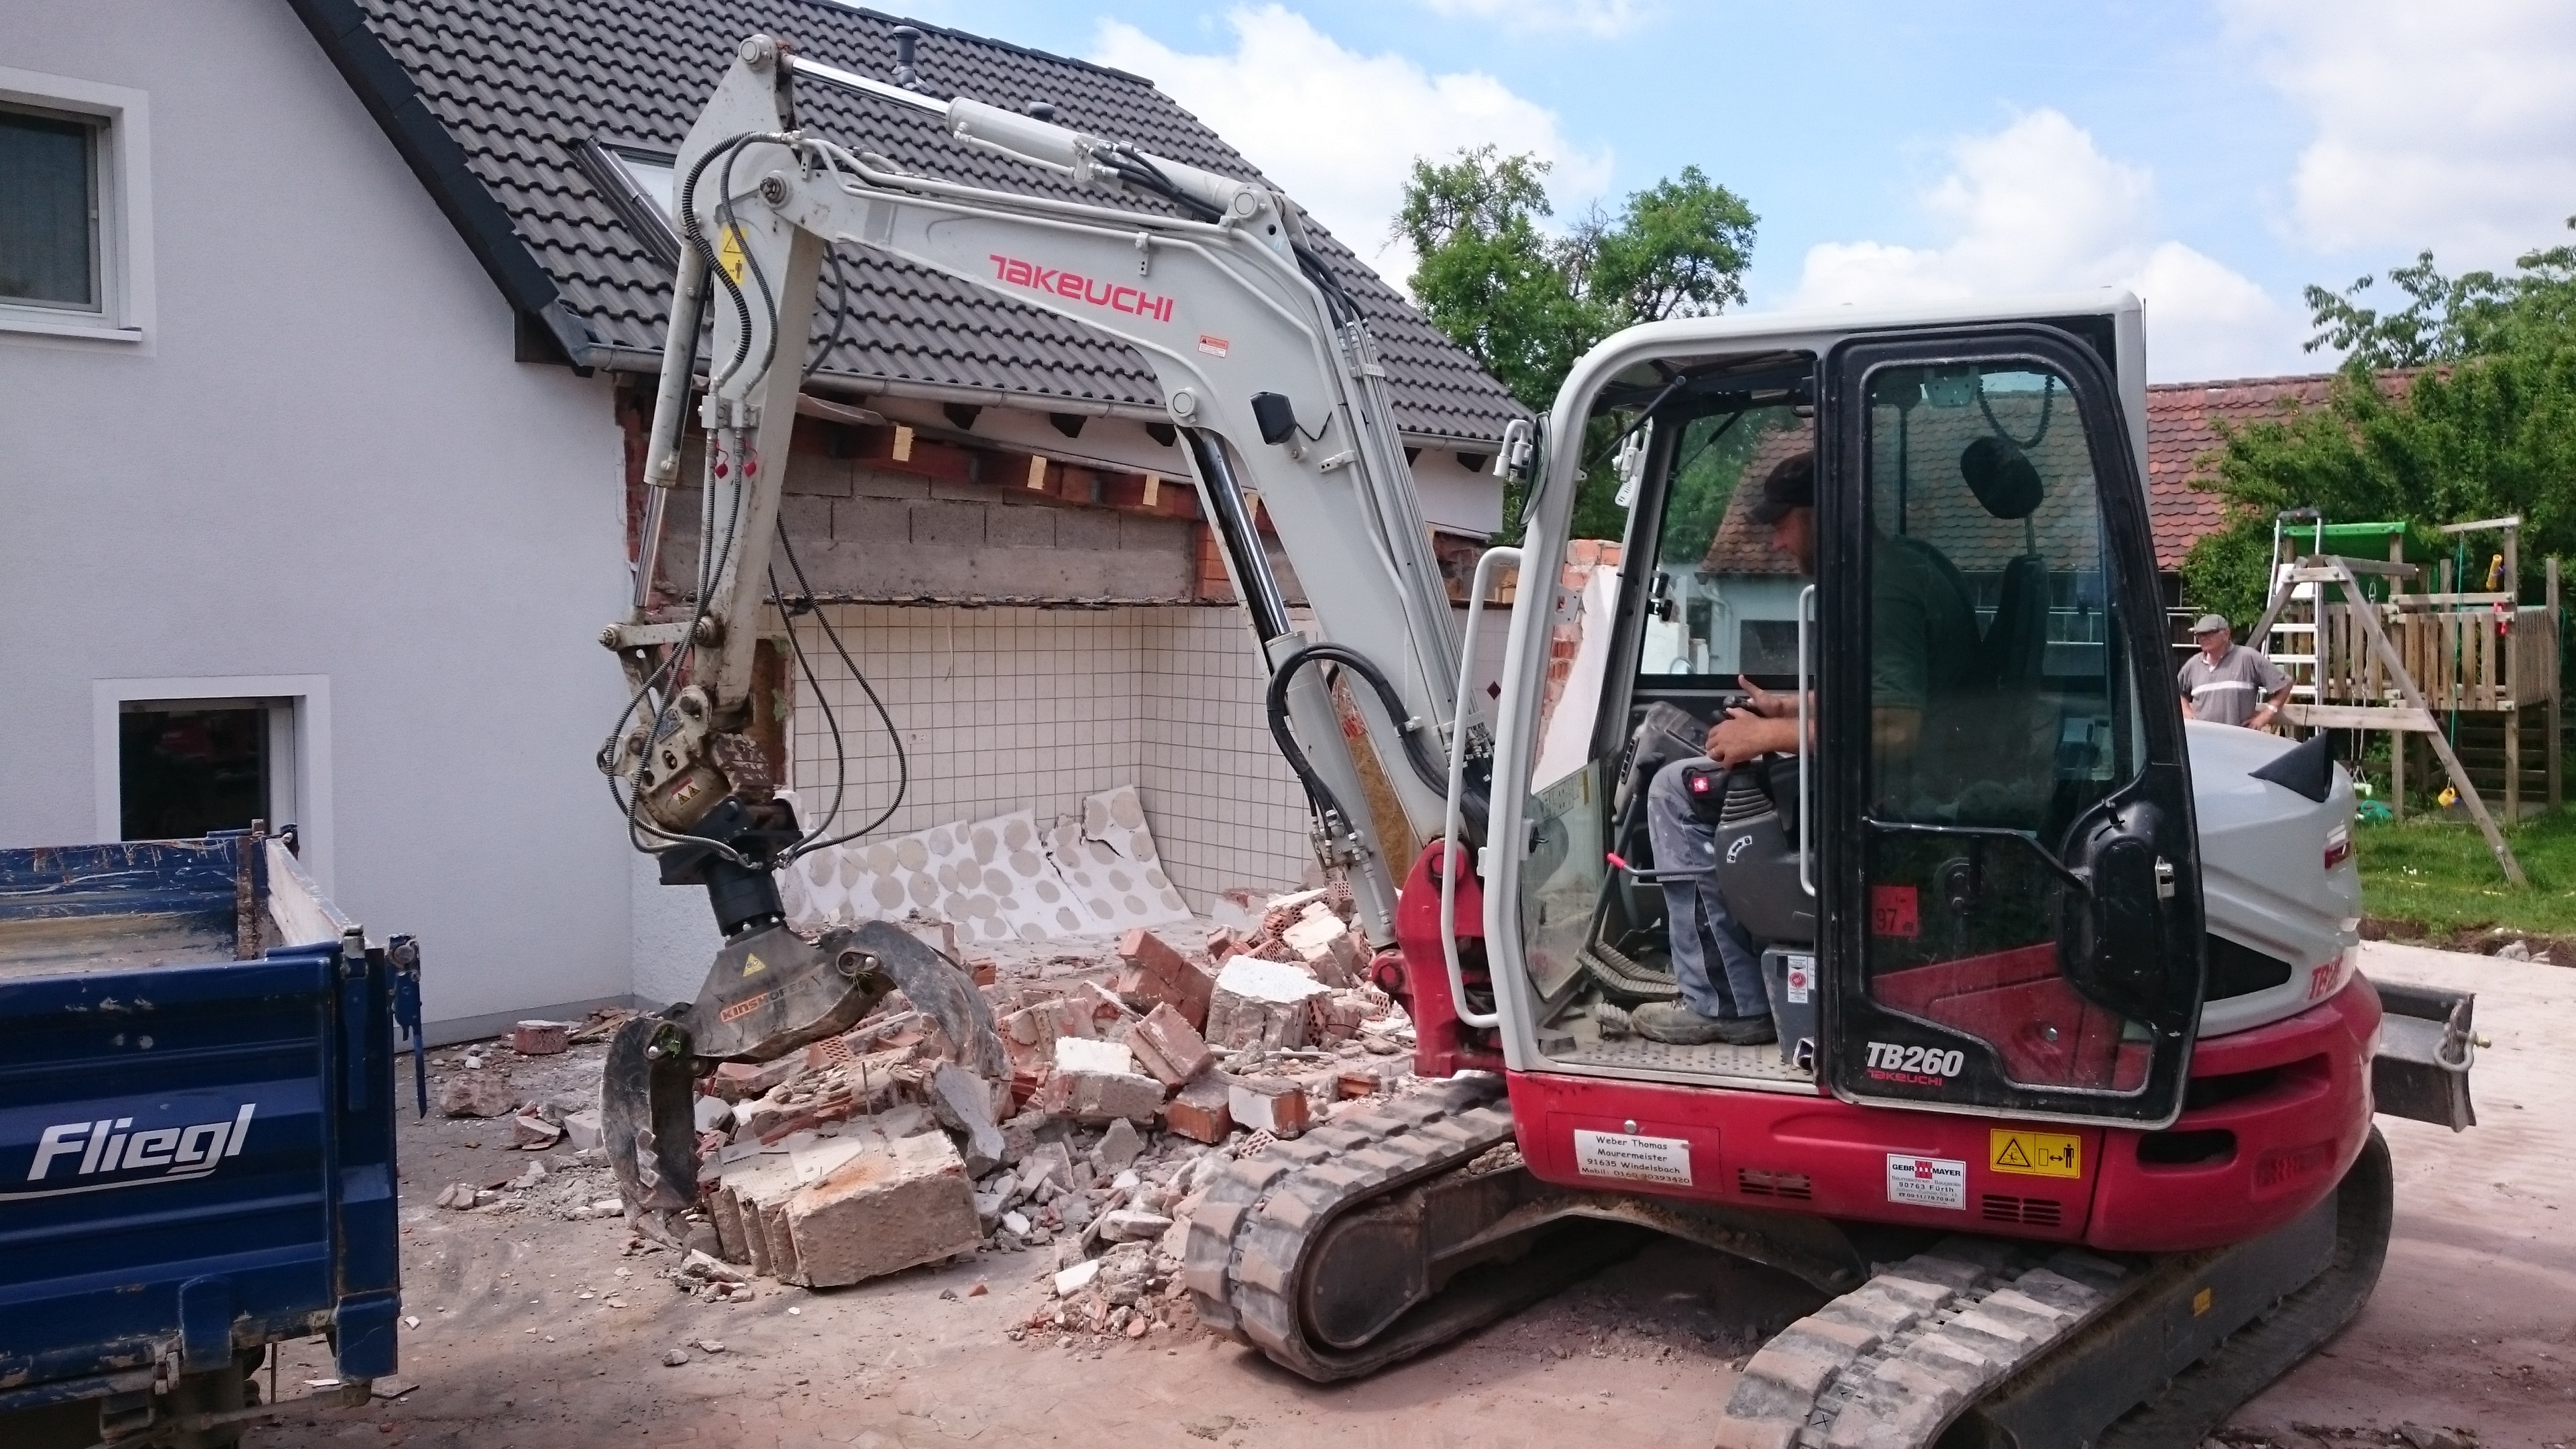 takeuchi takeuchi bagger tb 260 im abbruch einsatz. Black Bedroom Furniture Sets. Home Design Ideas